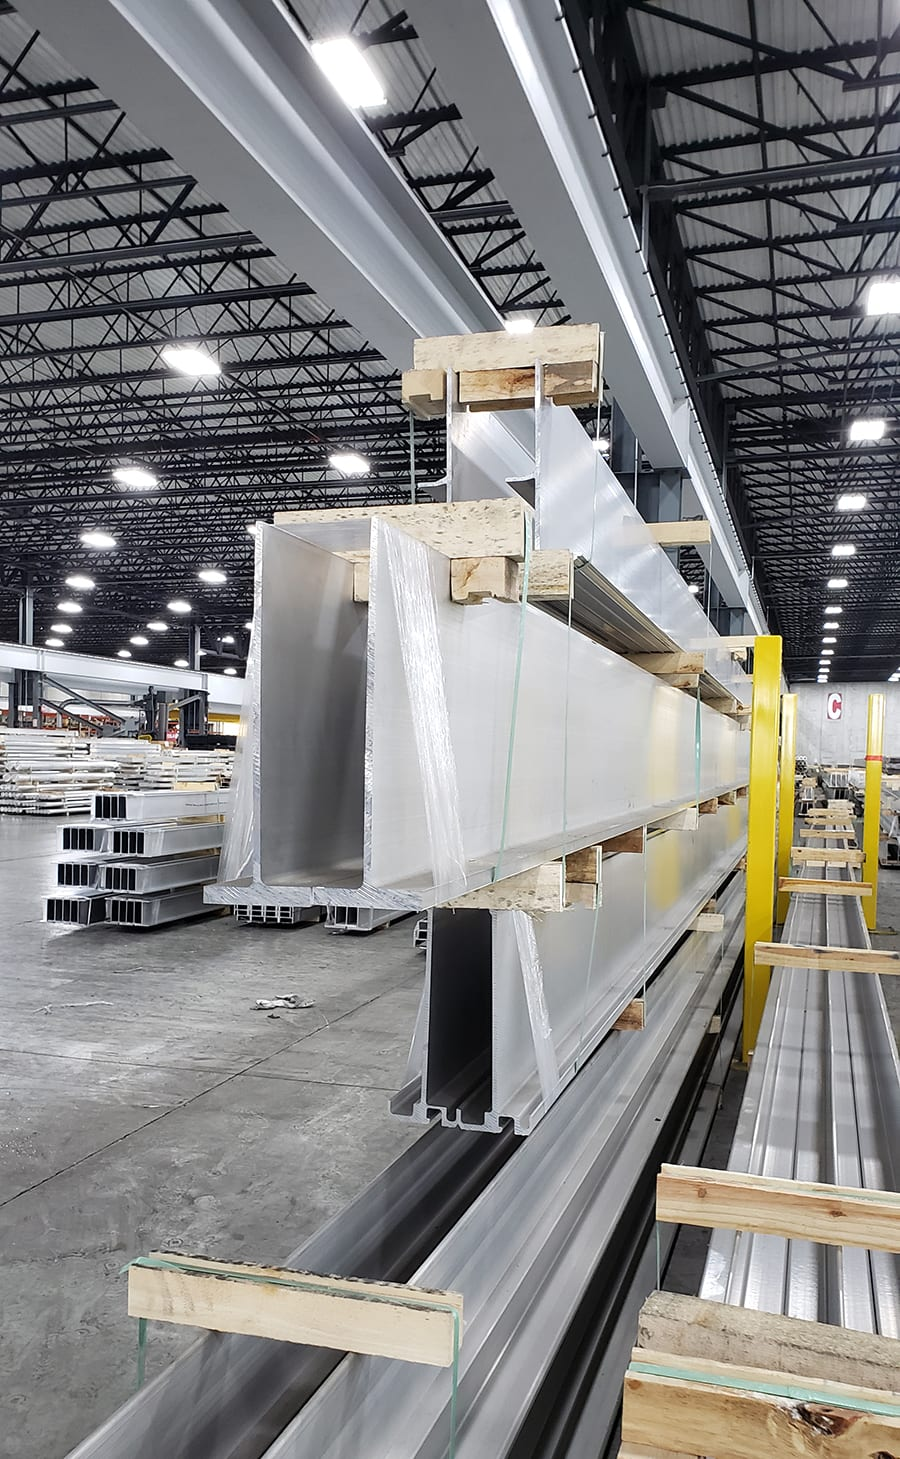 nanshan america can create custom extrusions for specialized projects